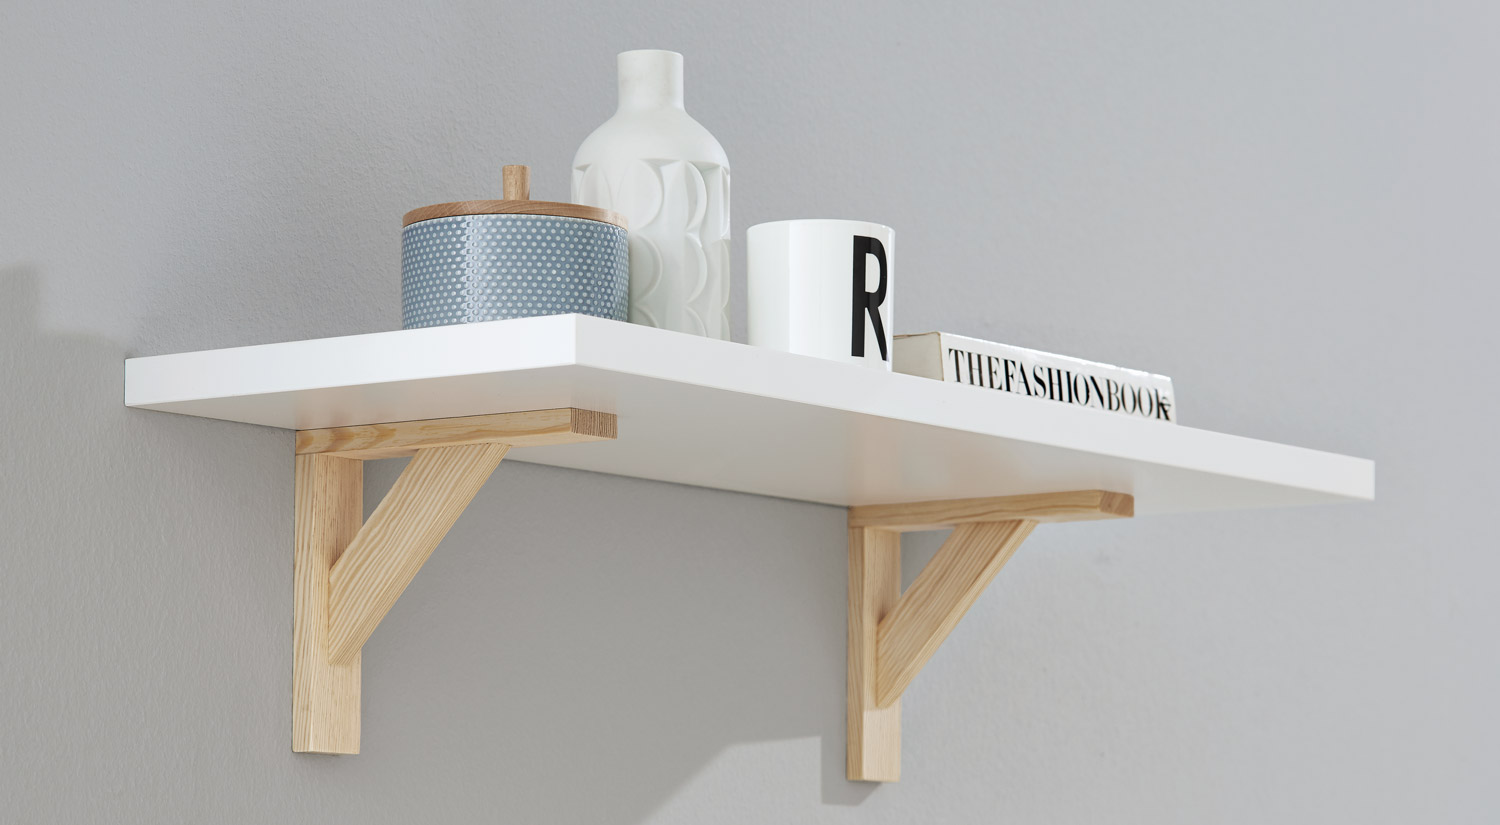 Floating shelf - BOARD+COUNTRY Scandinavian style floating shelf in white/wood